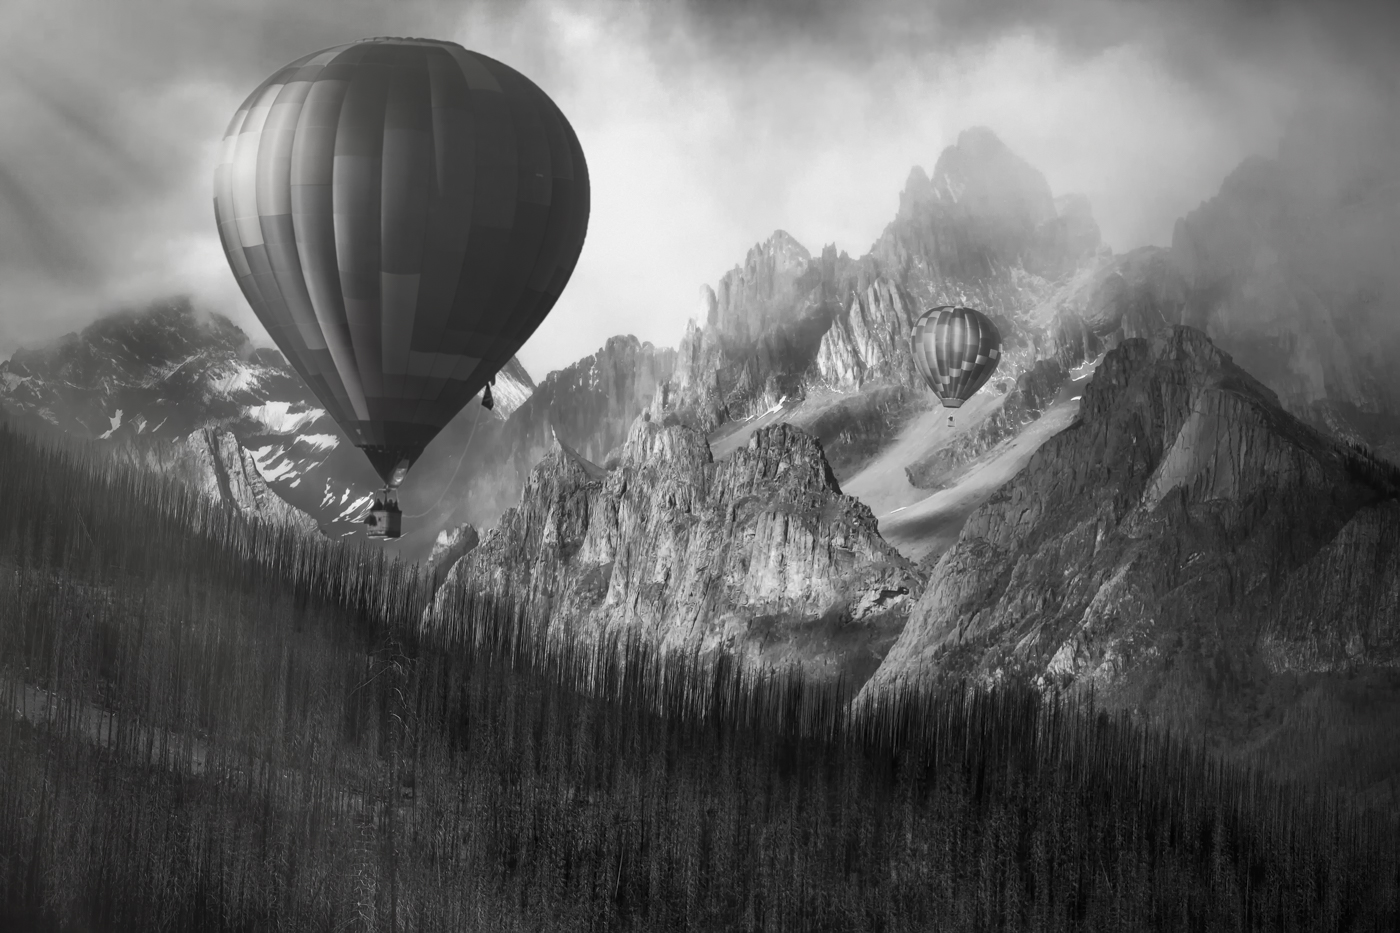 This dynamic image is contrasted both in tone and subject. the fragile round balloons and jagged stormy peaks.